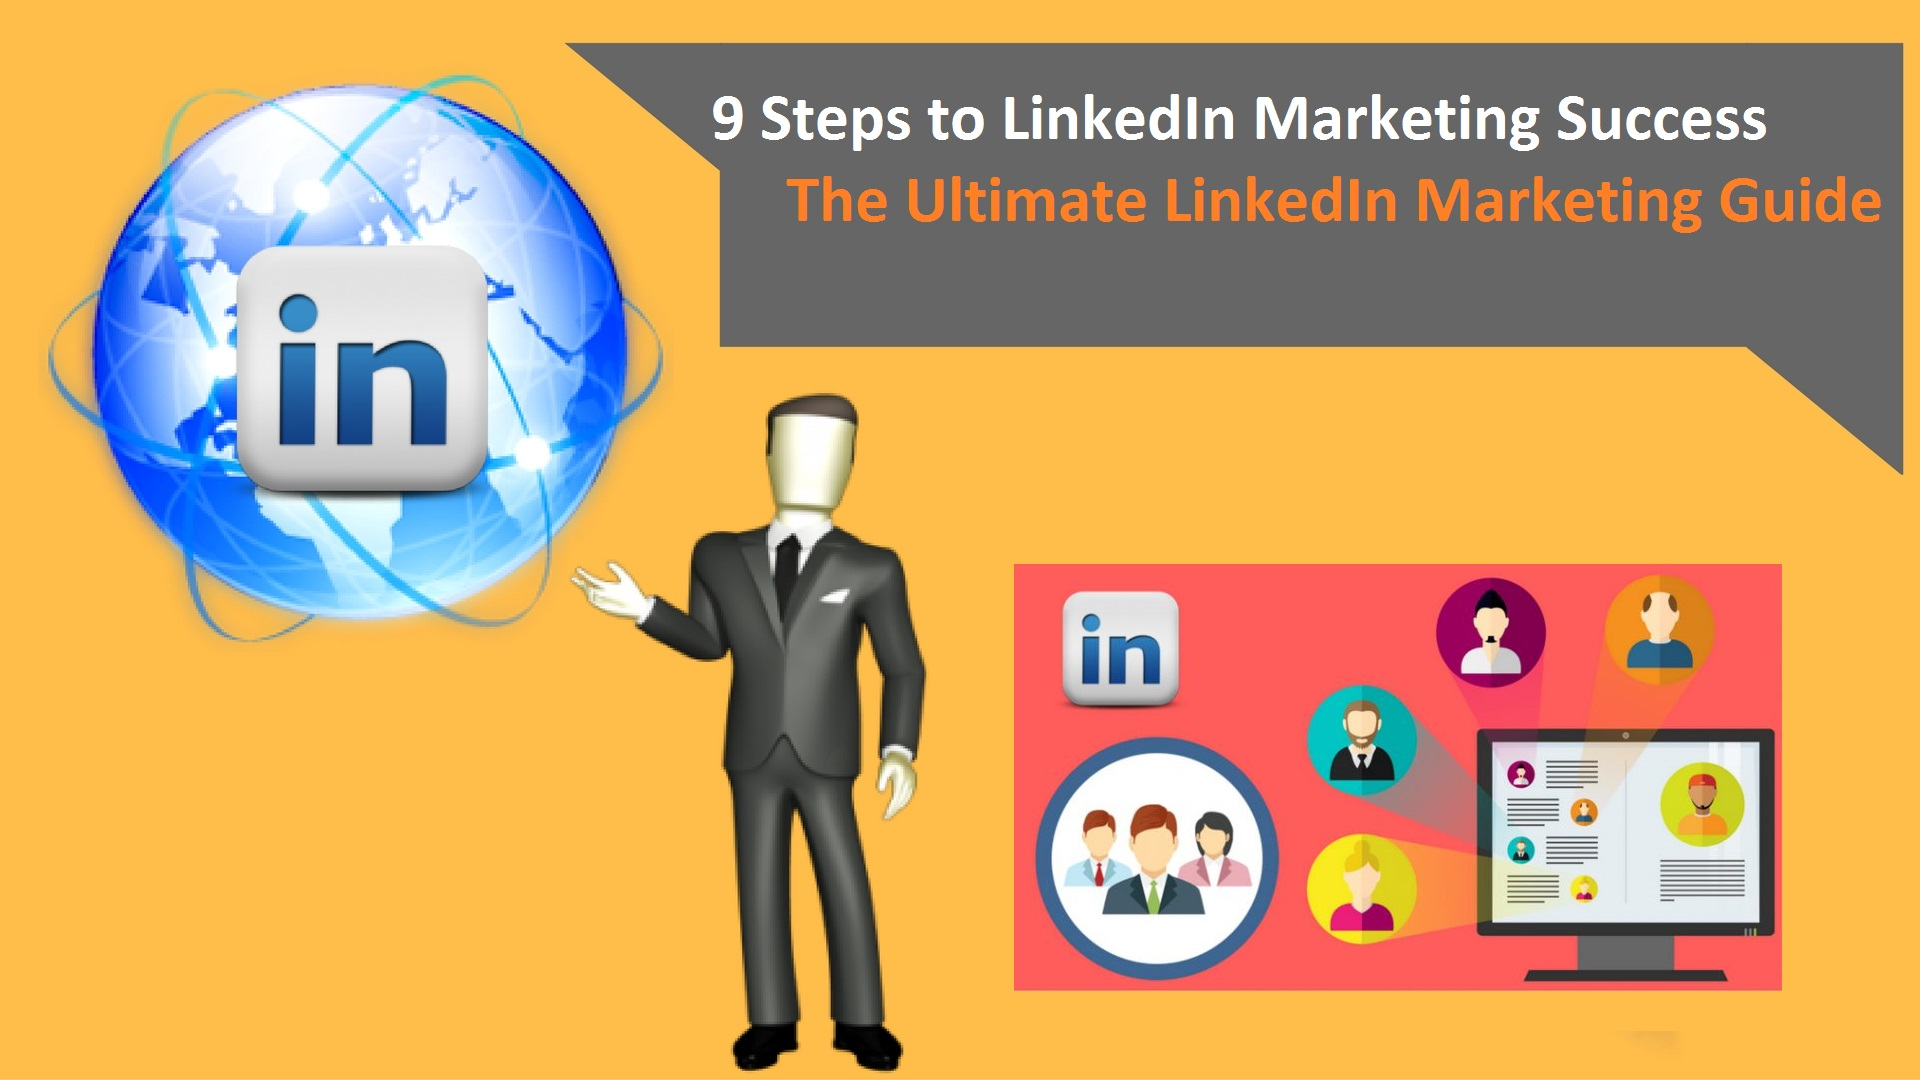 9 Steps to LinkedIn Marketing Success -The Ultimate LinkedIn Marketing Guide